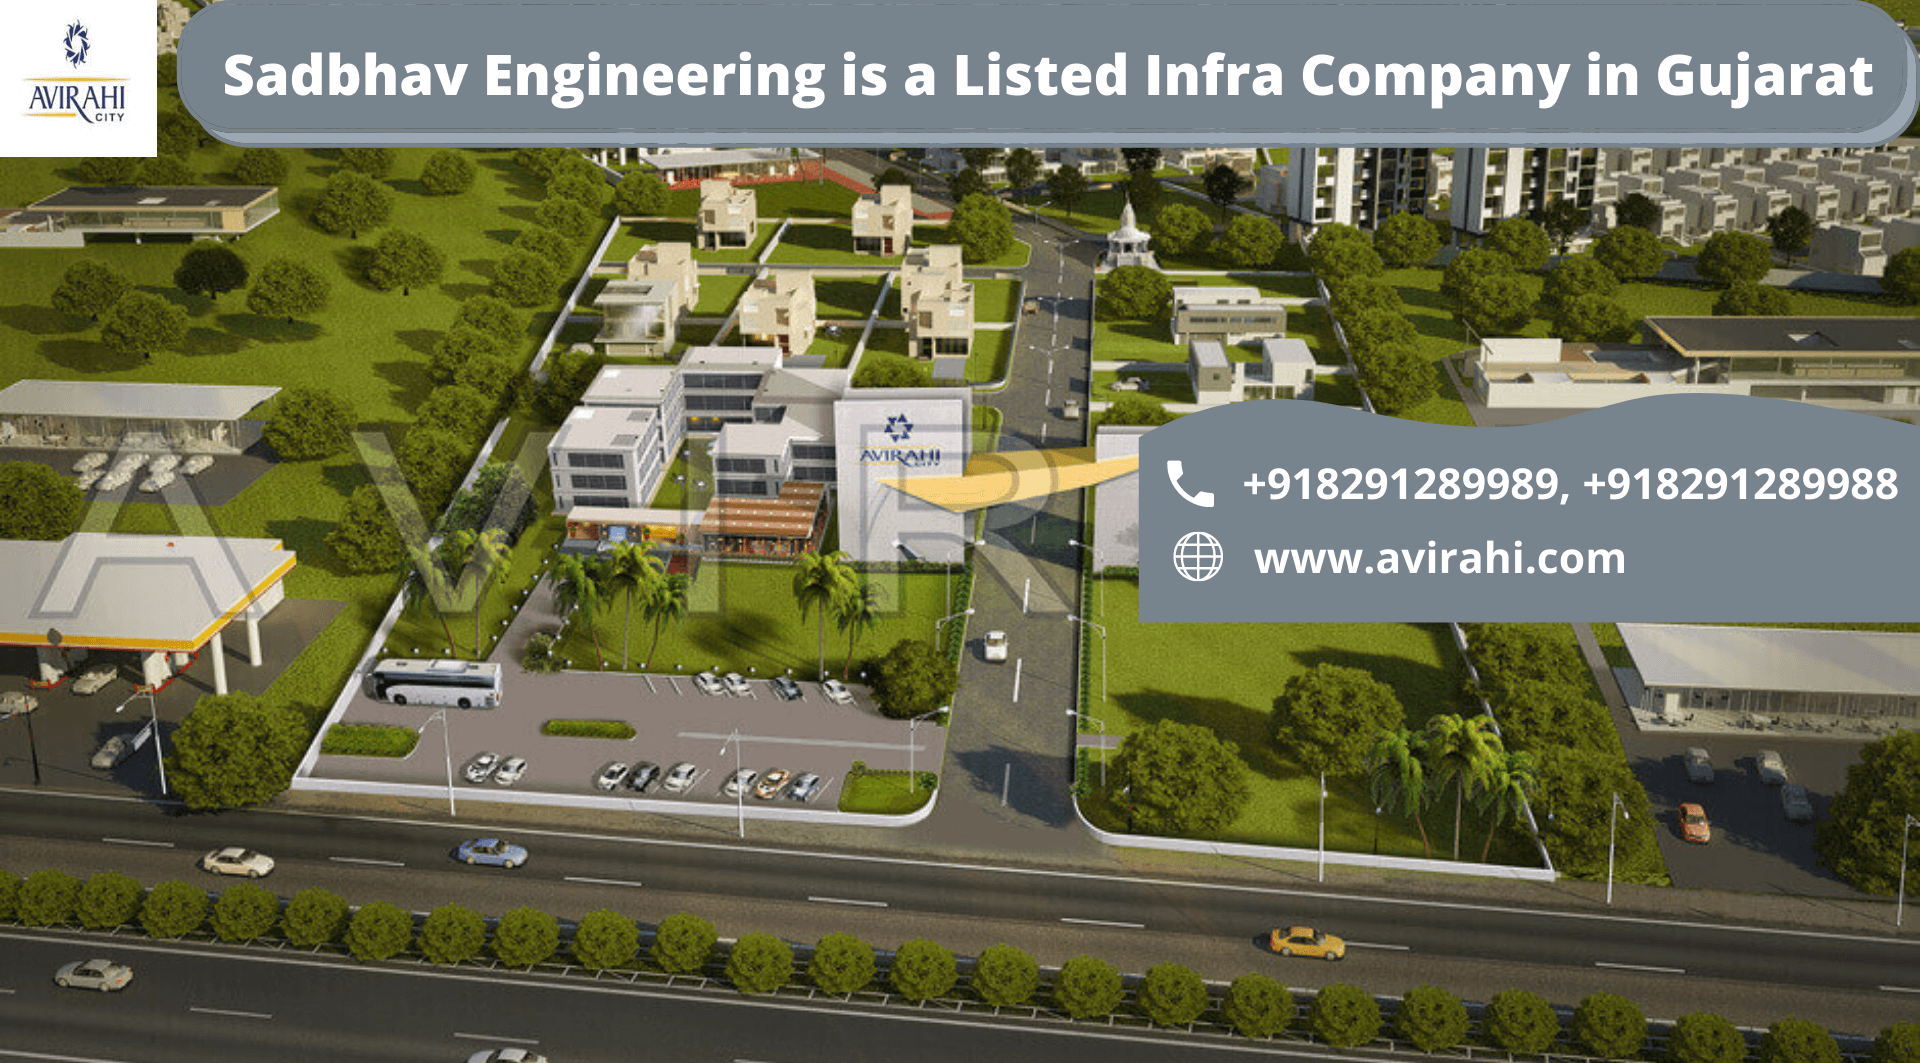 Sadbhav Engineering is a Listed Infra Company in Gujarat